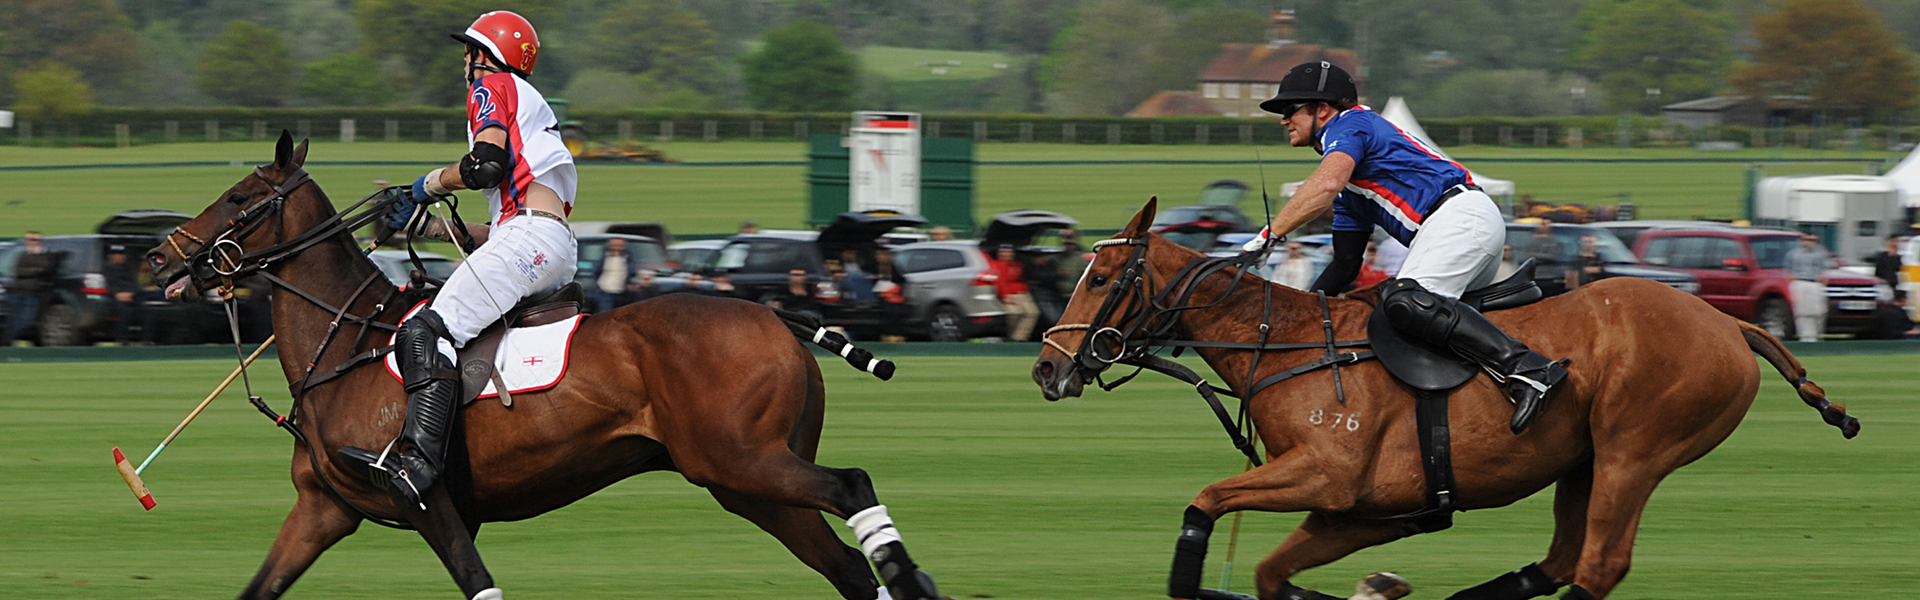 Wellington Polo Image